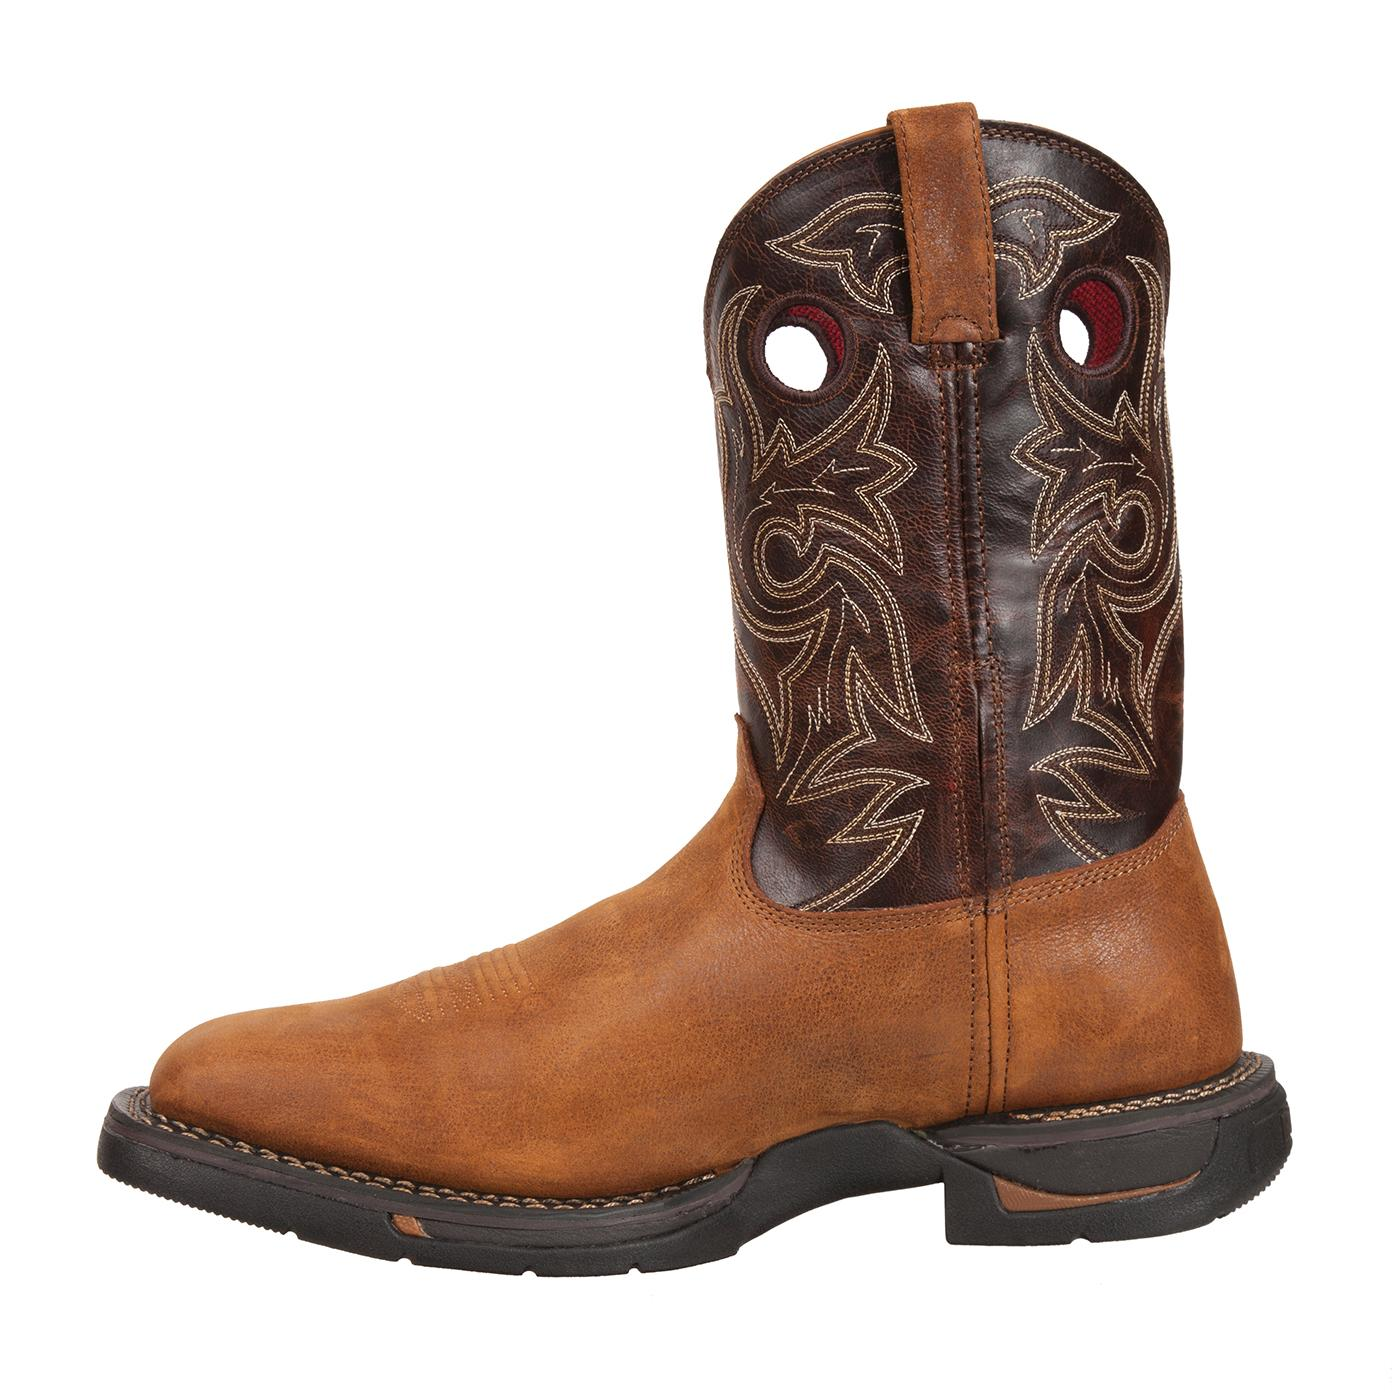 These Rocky Long Range Western Boots Have A Handsome